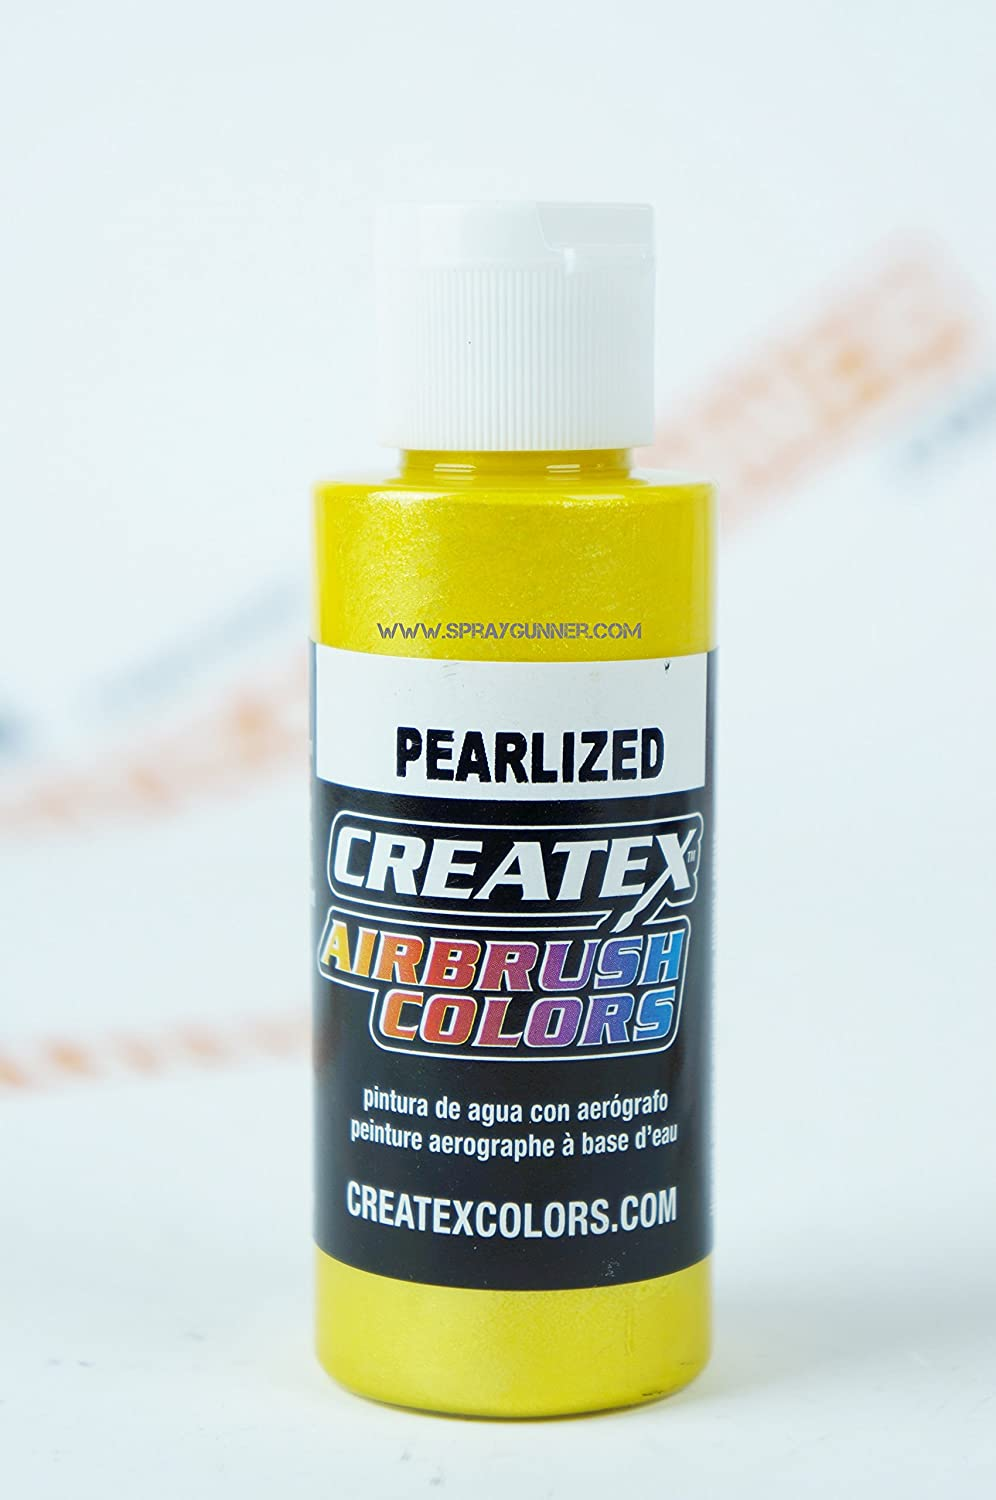 Airbrush Colors Createx Pearlized 5311 Pearl Pineapple 2oz. Paint. by SprayGunner Createx Colors